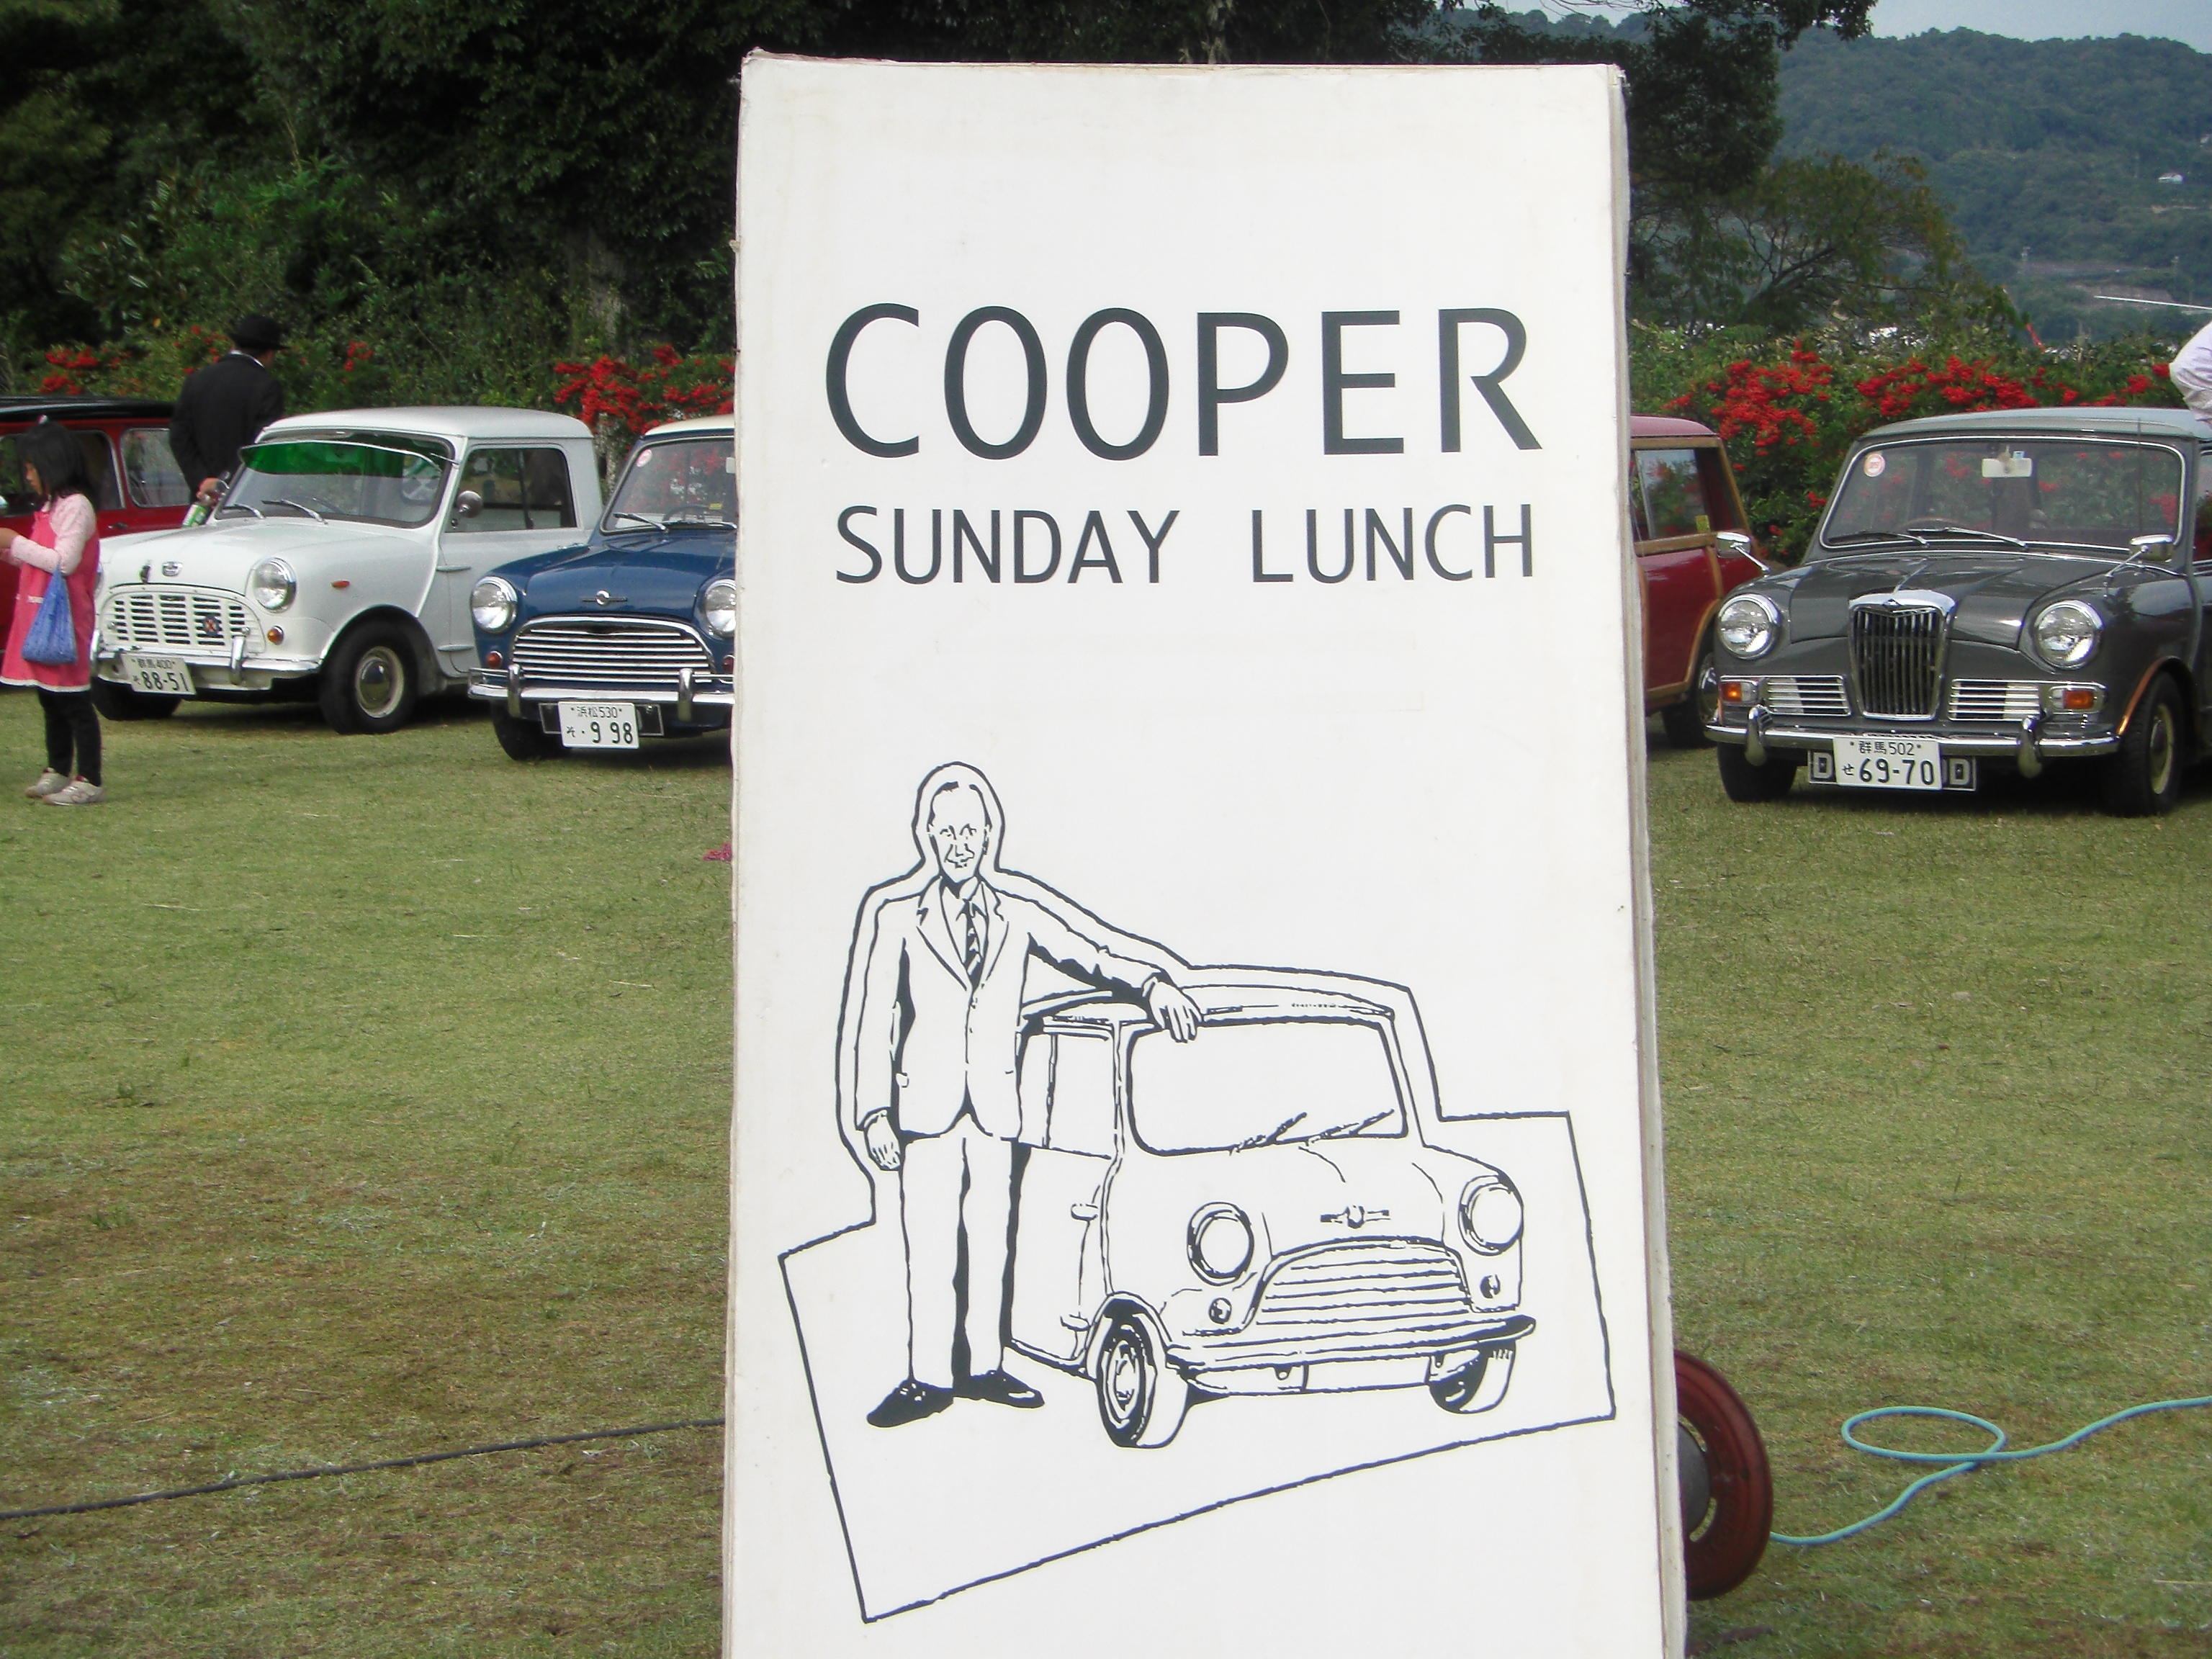 Cooper Sunday Lunch